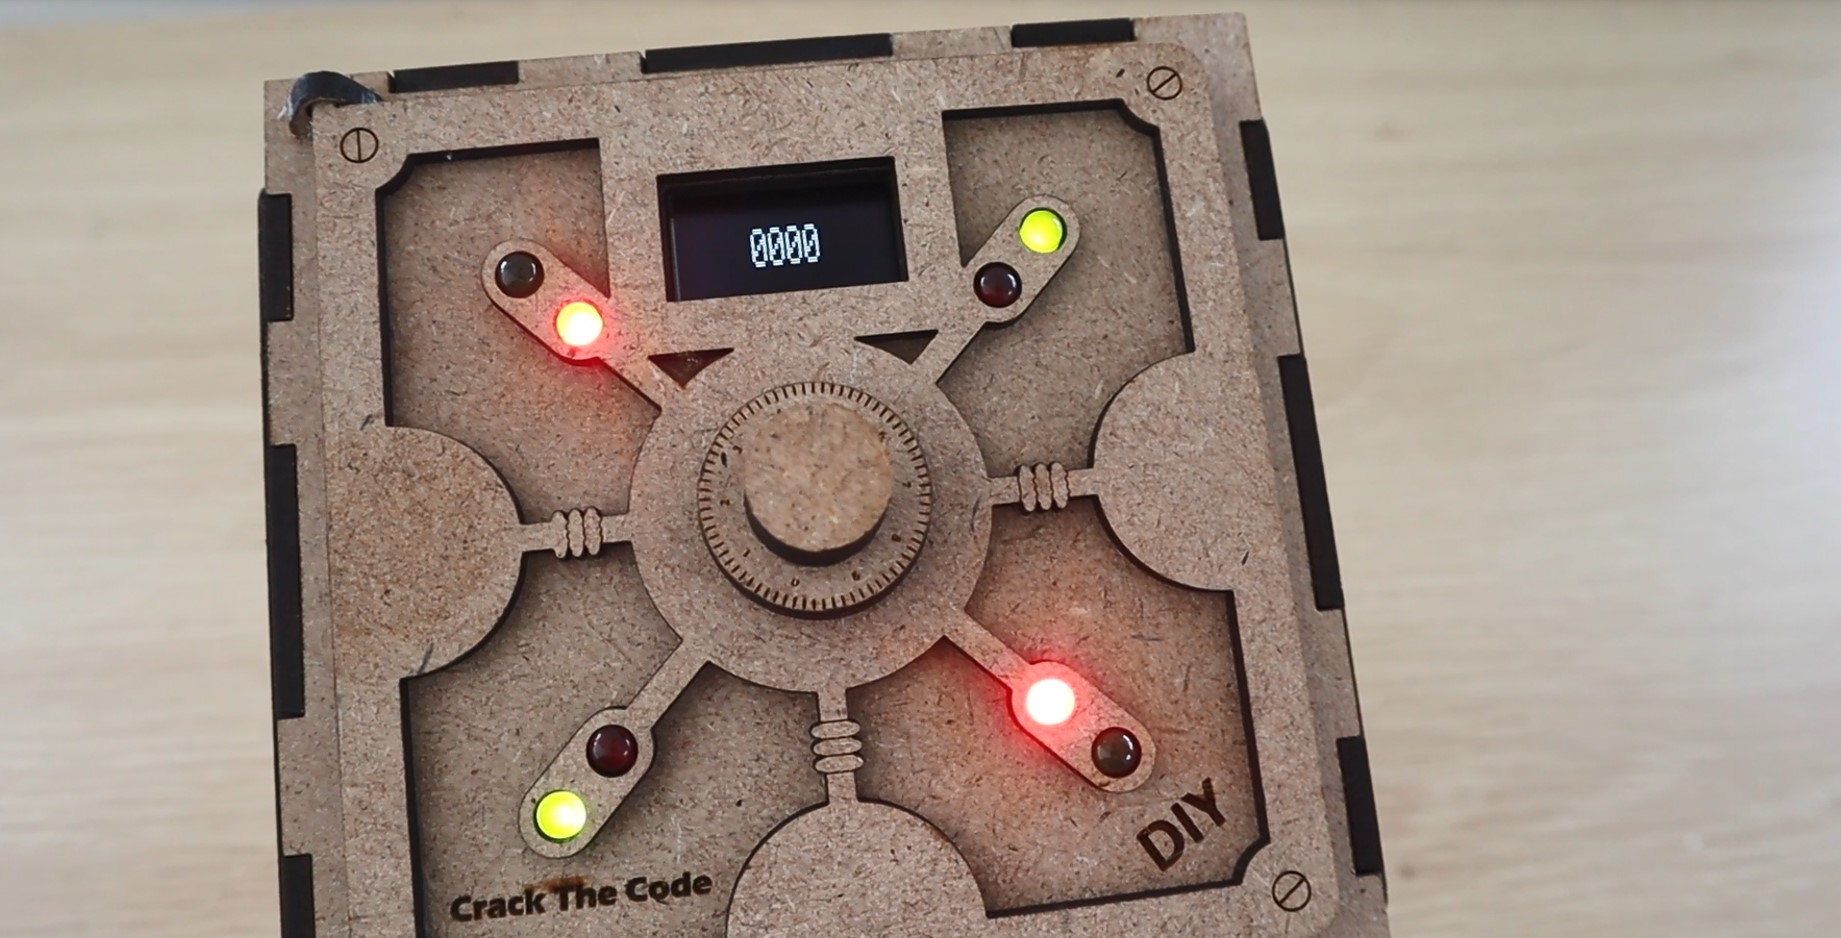 The LEDs Light Up To Show Correct Digits And Positions